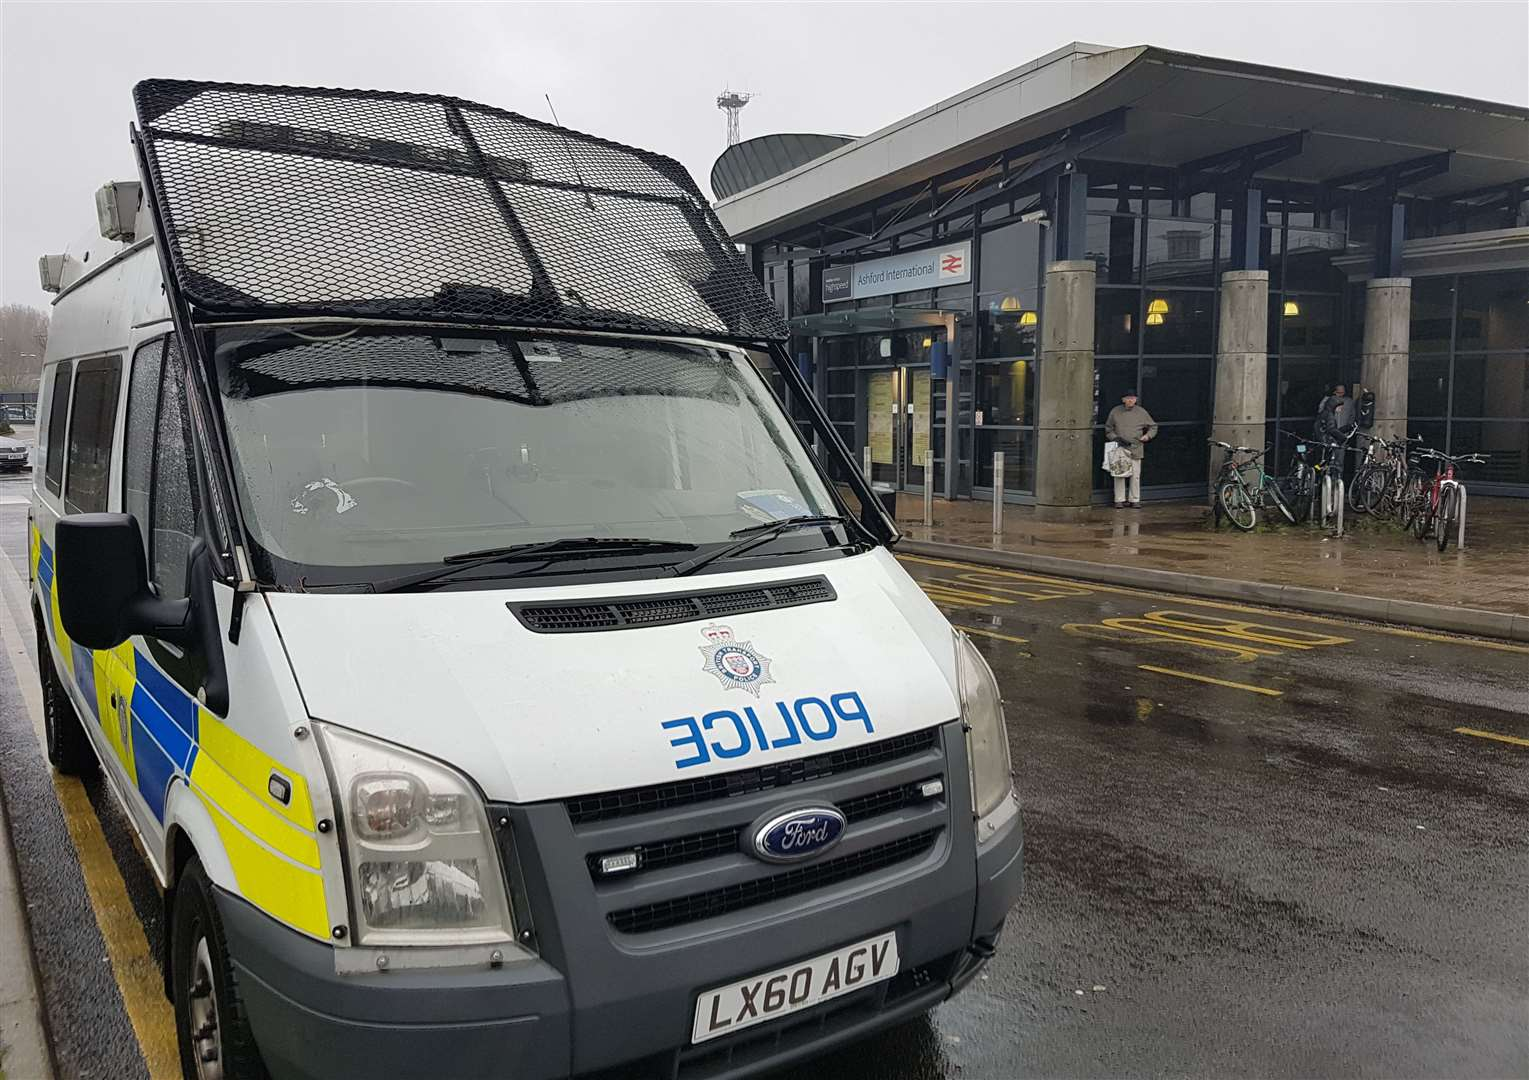 A police van is currently parked outside Ashford International station